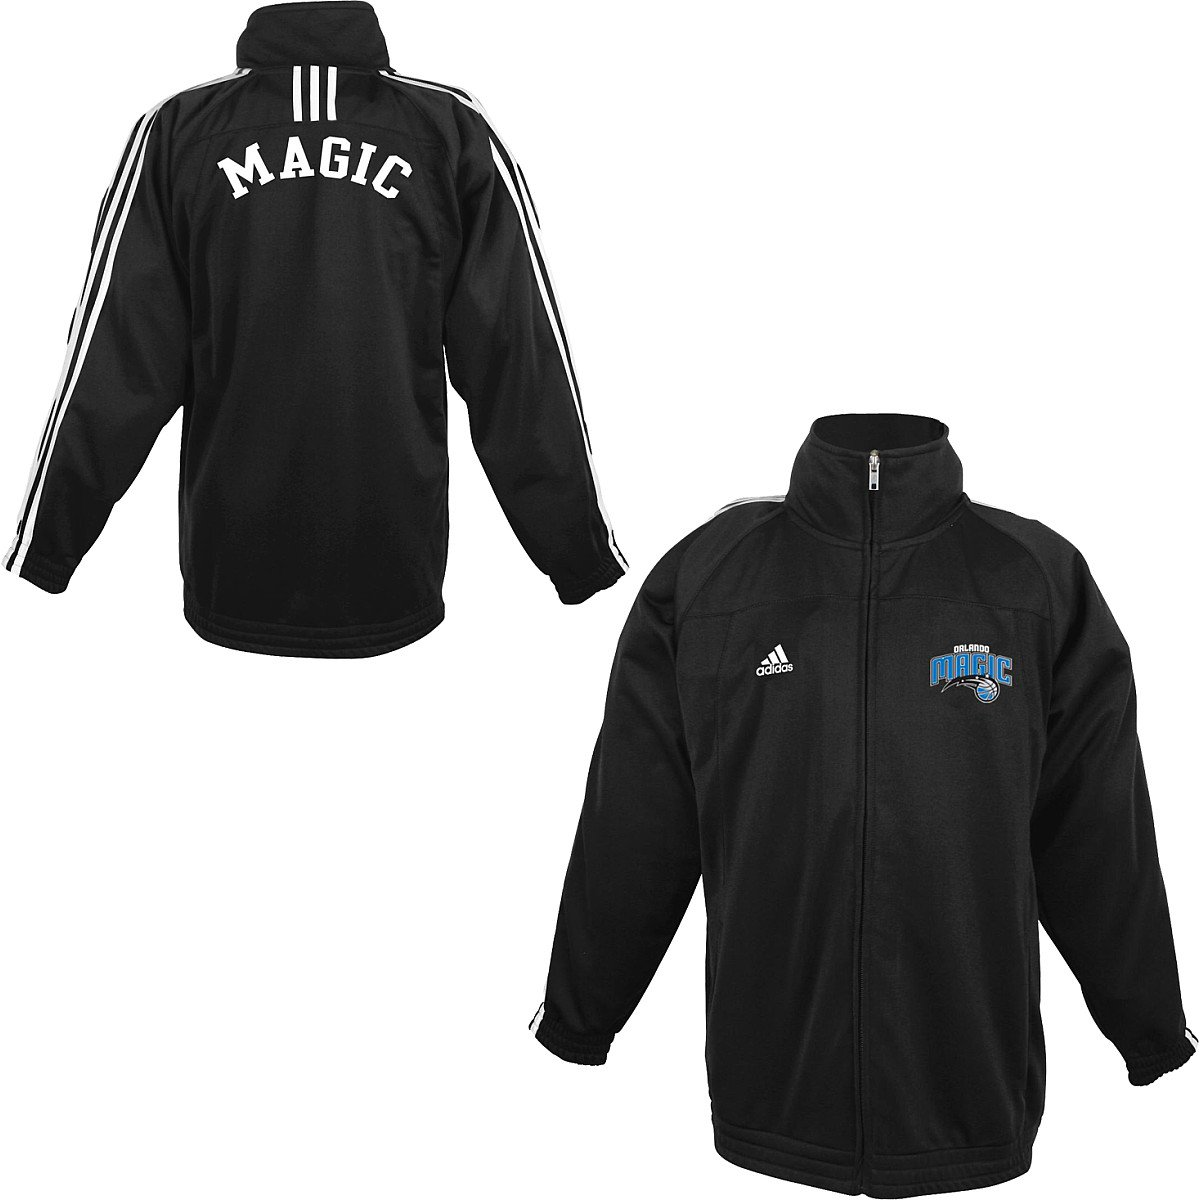 0f7c348f185 Amazon.com  adidas Orlando Magic NBA Basketball Youth Track Jacket ...